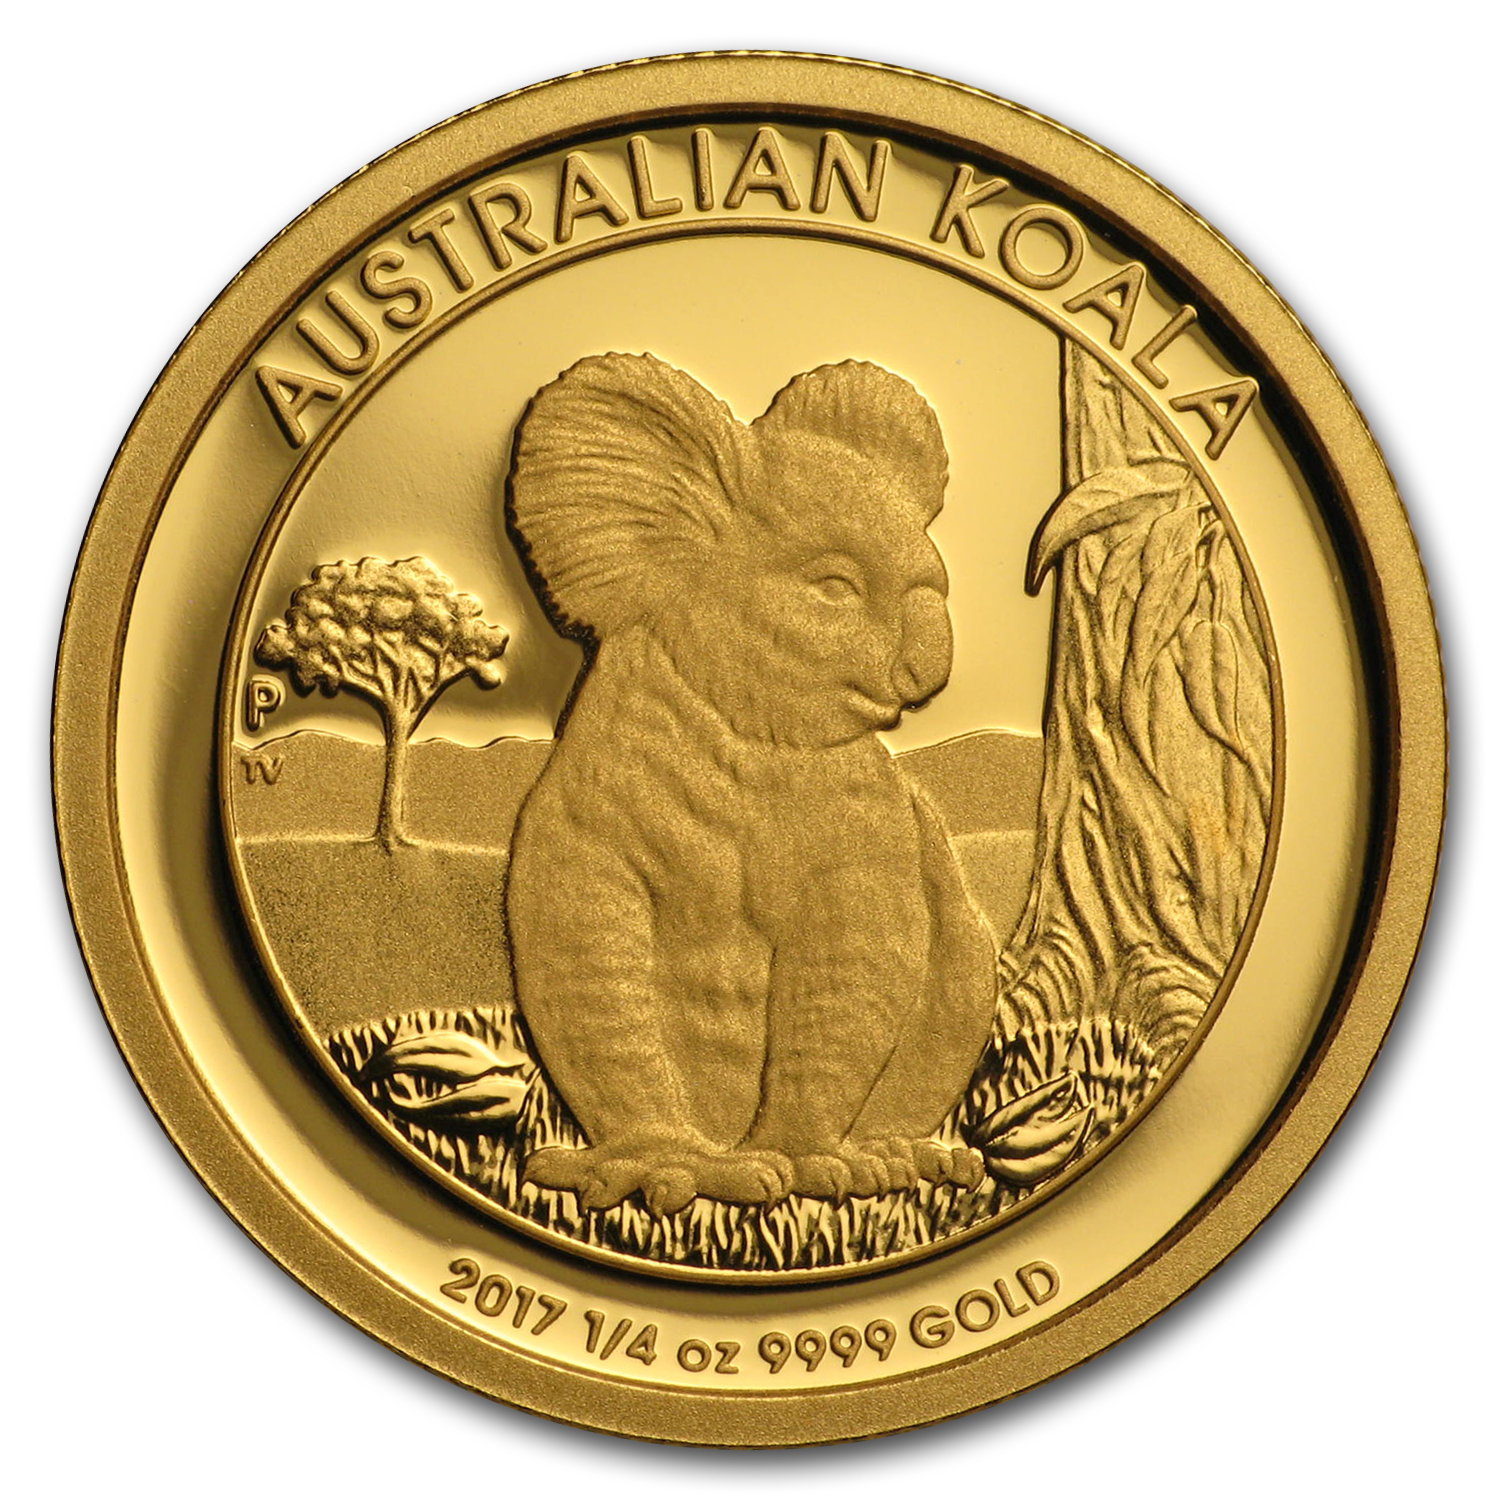 2017 Australia 1/4 oz Gold Koala Proof